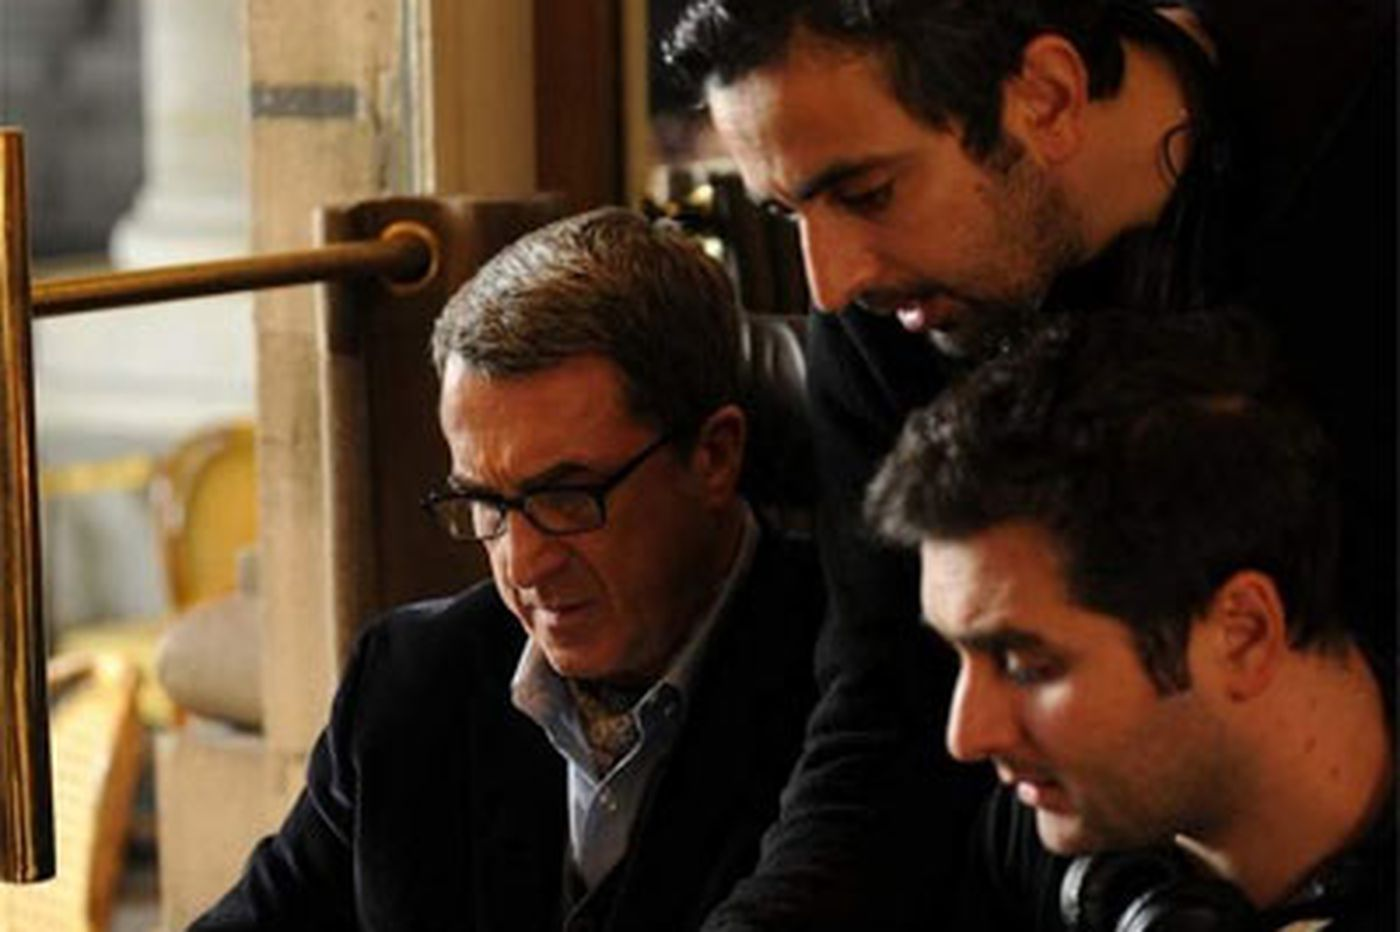 'The Intouchables' is a top three film in France